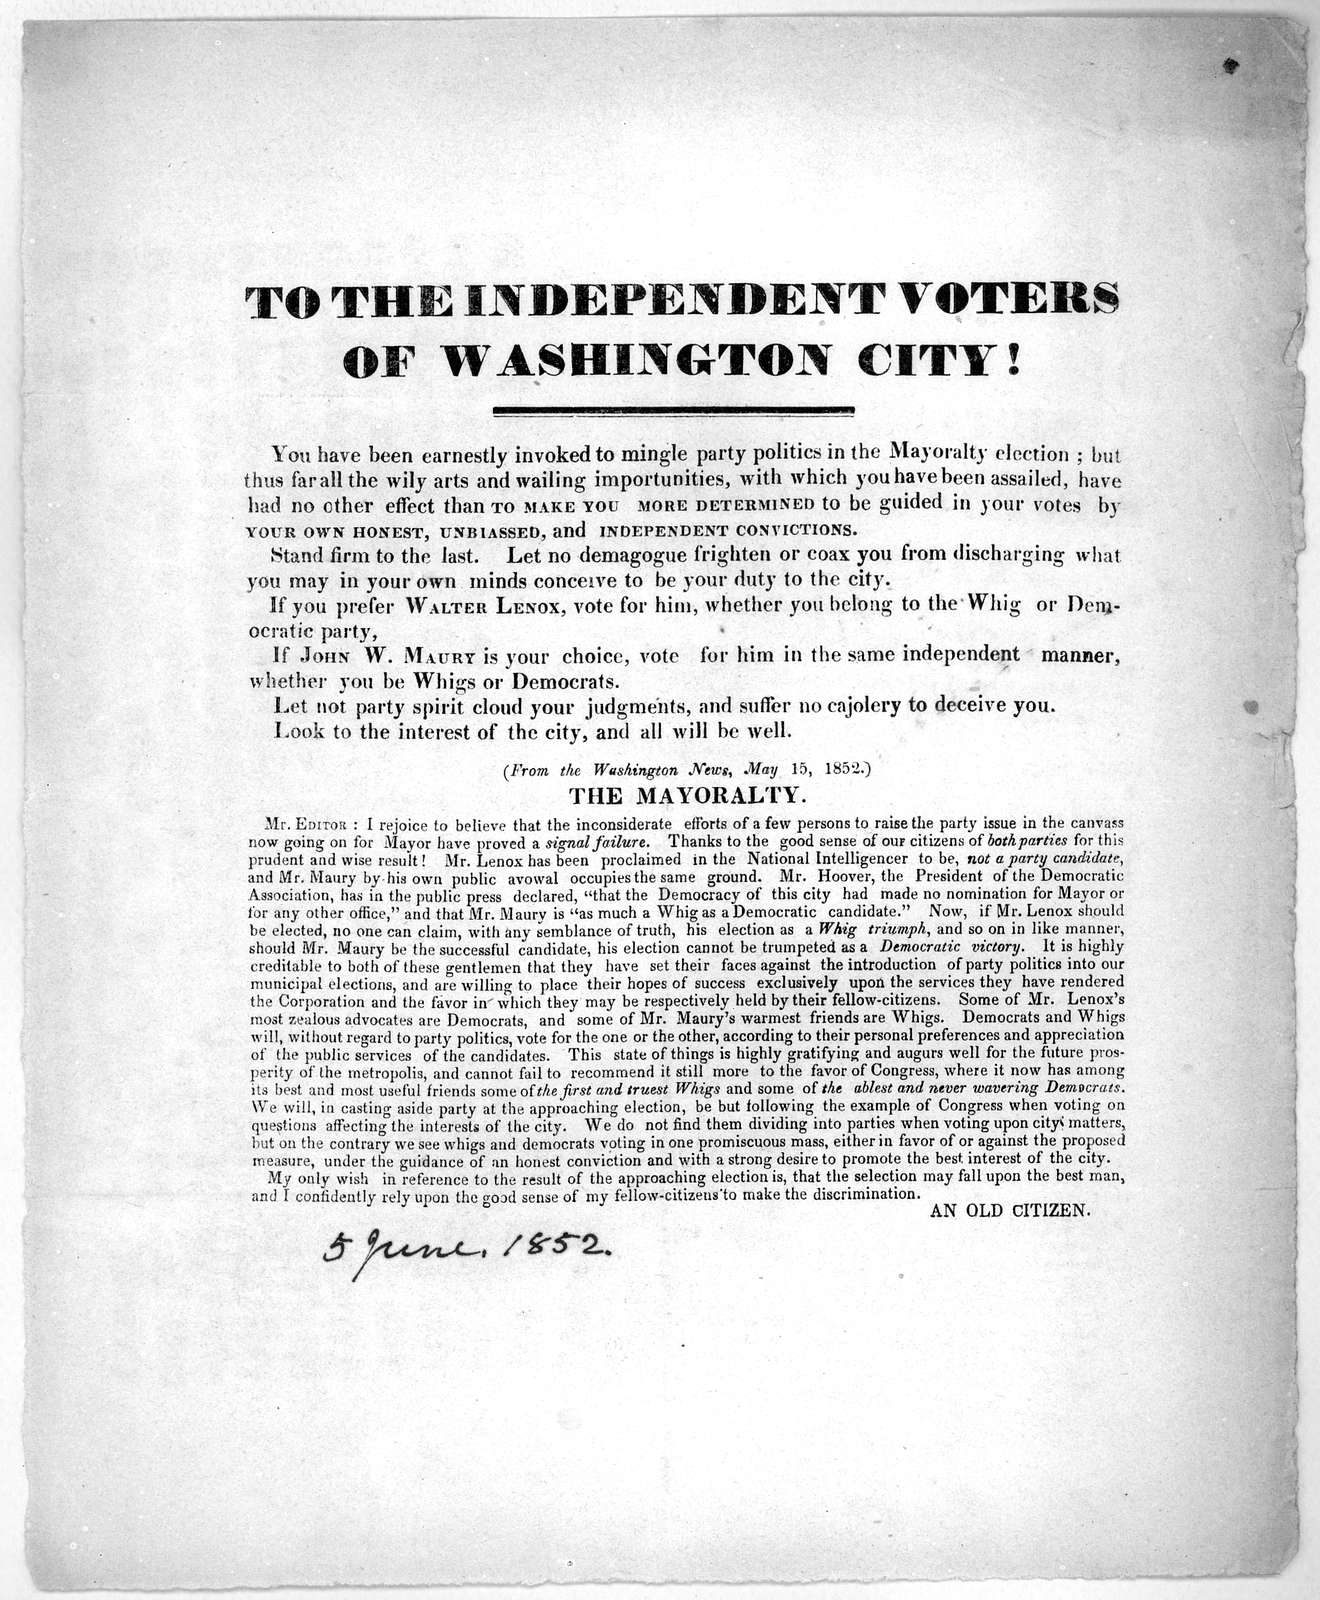 To the independent voters of Washington City! You have been earnestly invoked to mingle party politics in the mayoralty election ... [Signed] An old citizen. [Washington, 5 June, 1852].